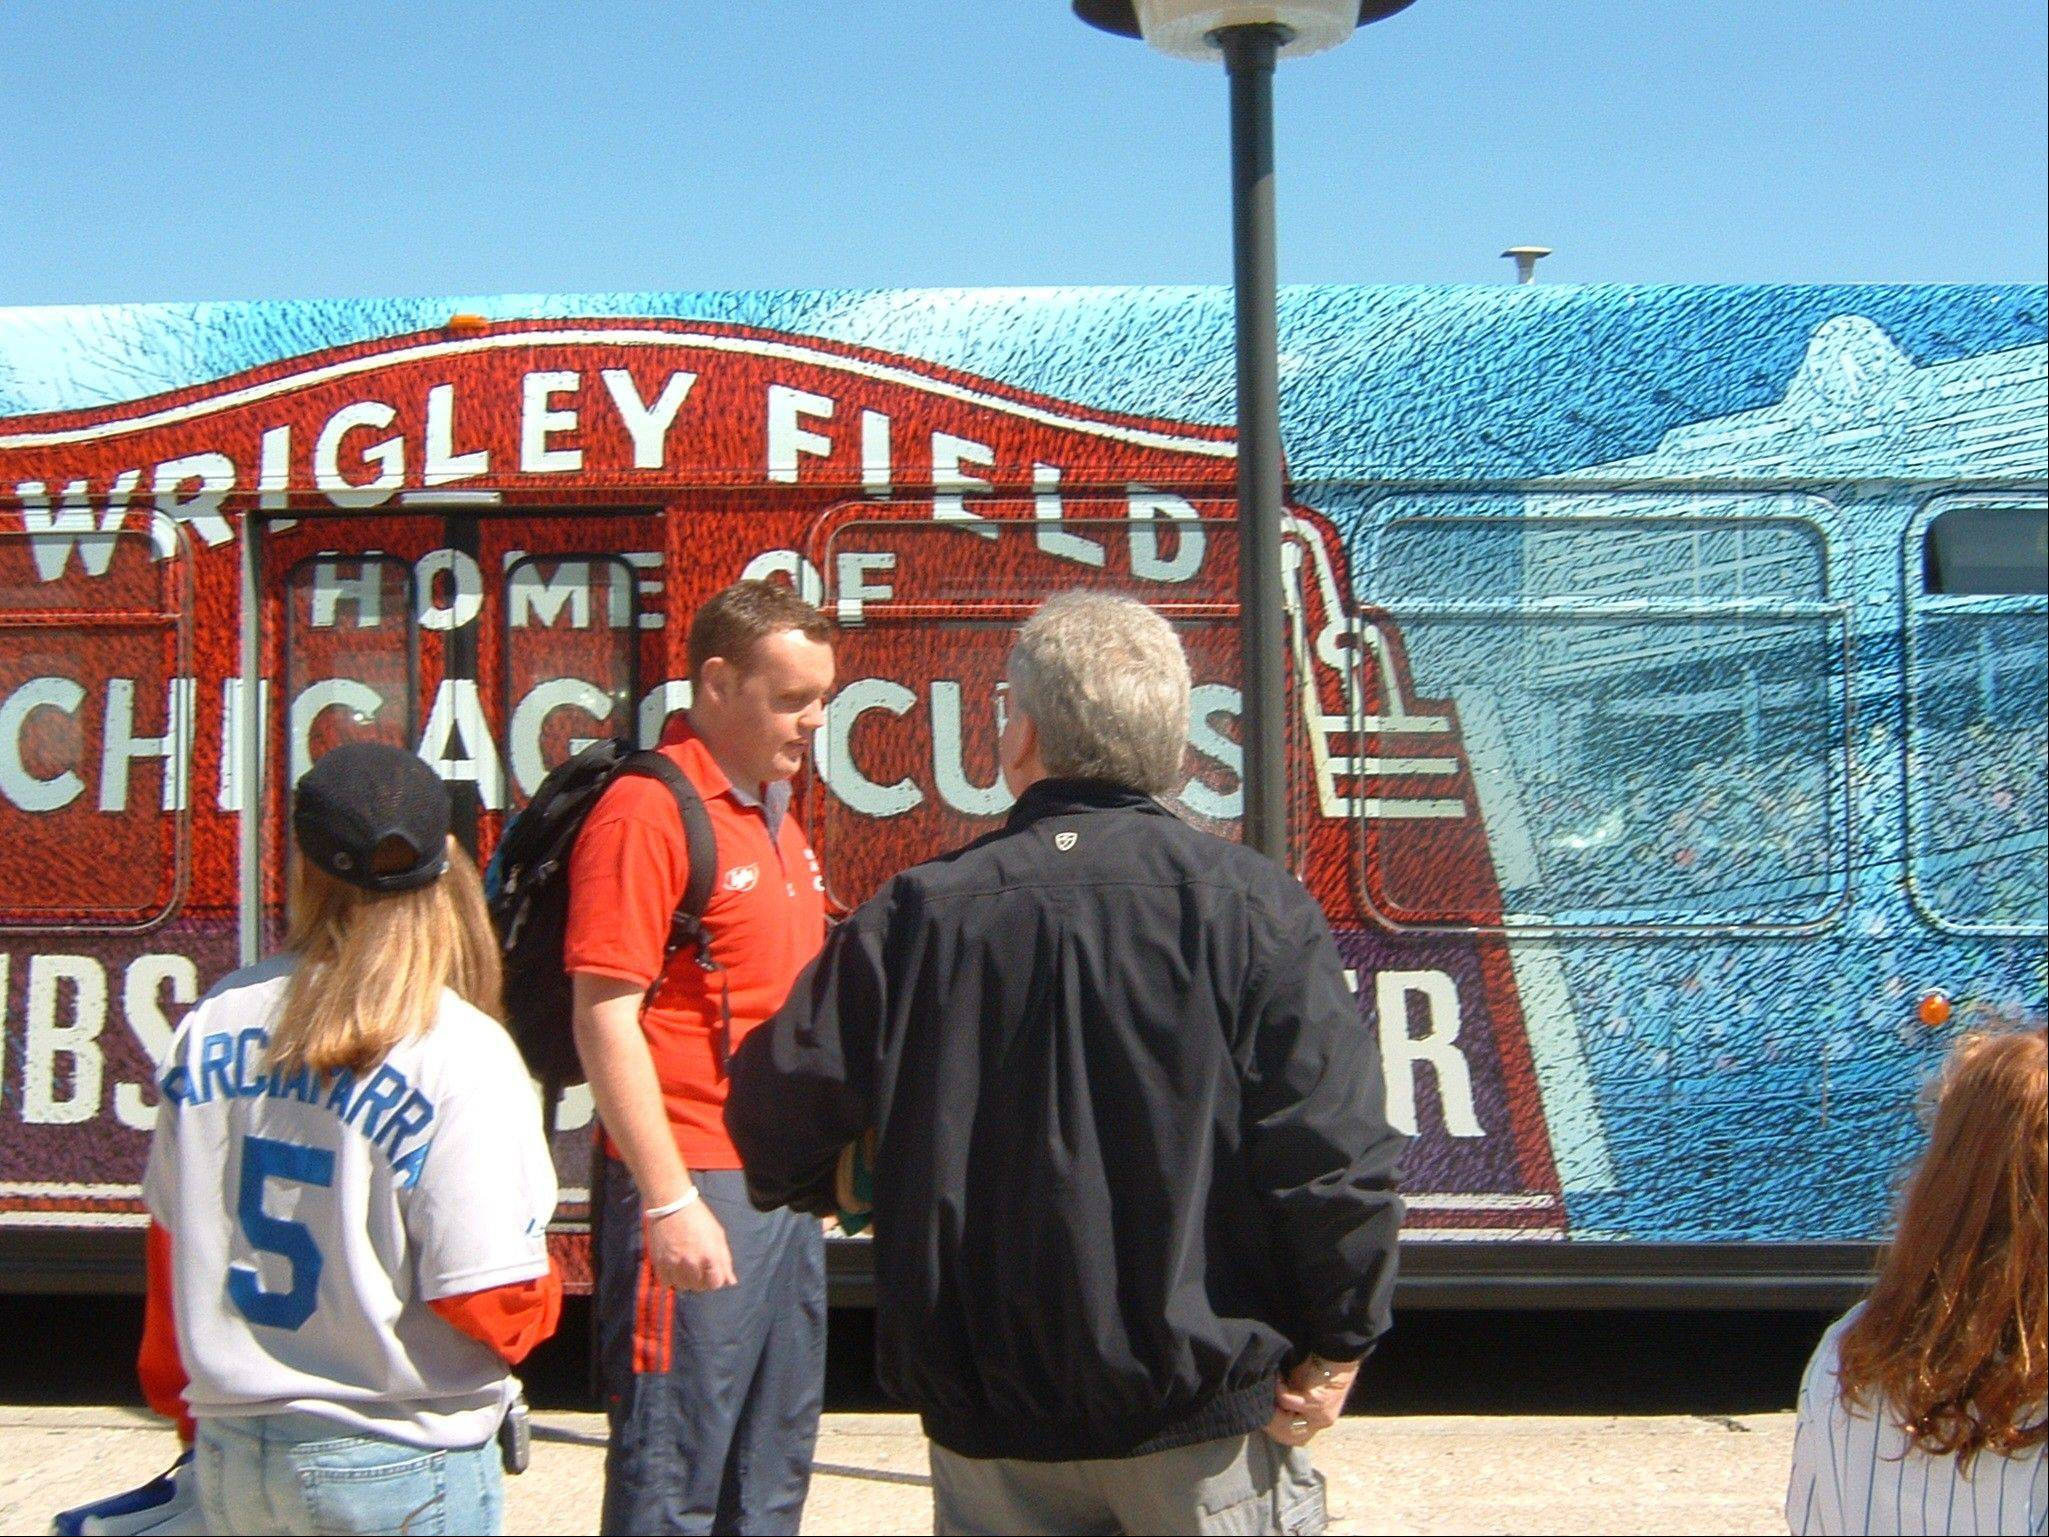 Cubs fans can leave the driving to Pace, which offers a Wrigley Field Express bus with stops in Lombard and Schaumburg.